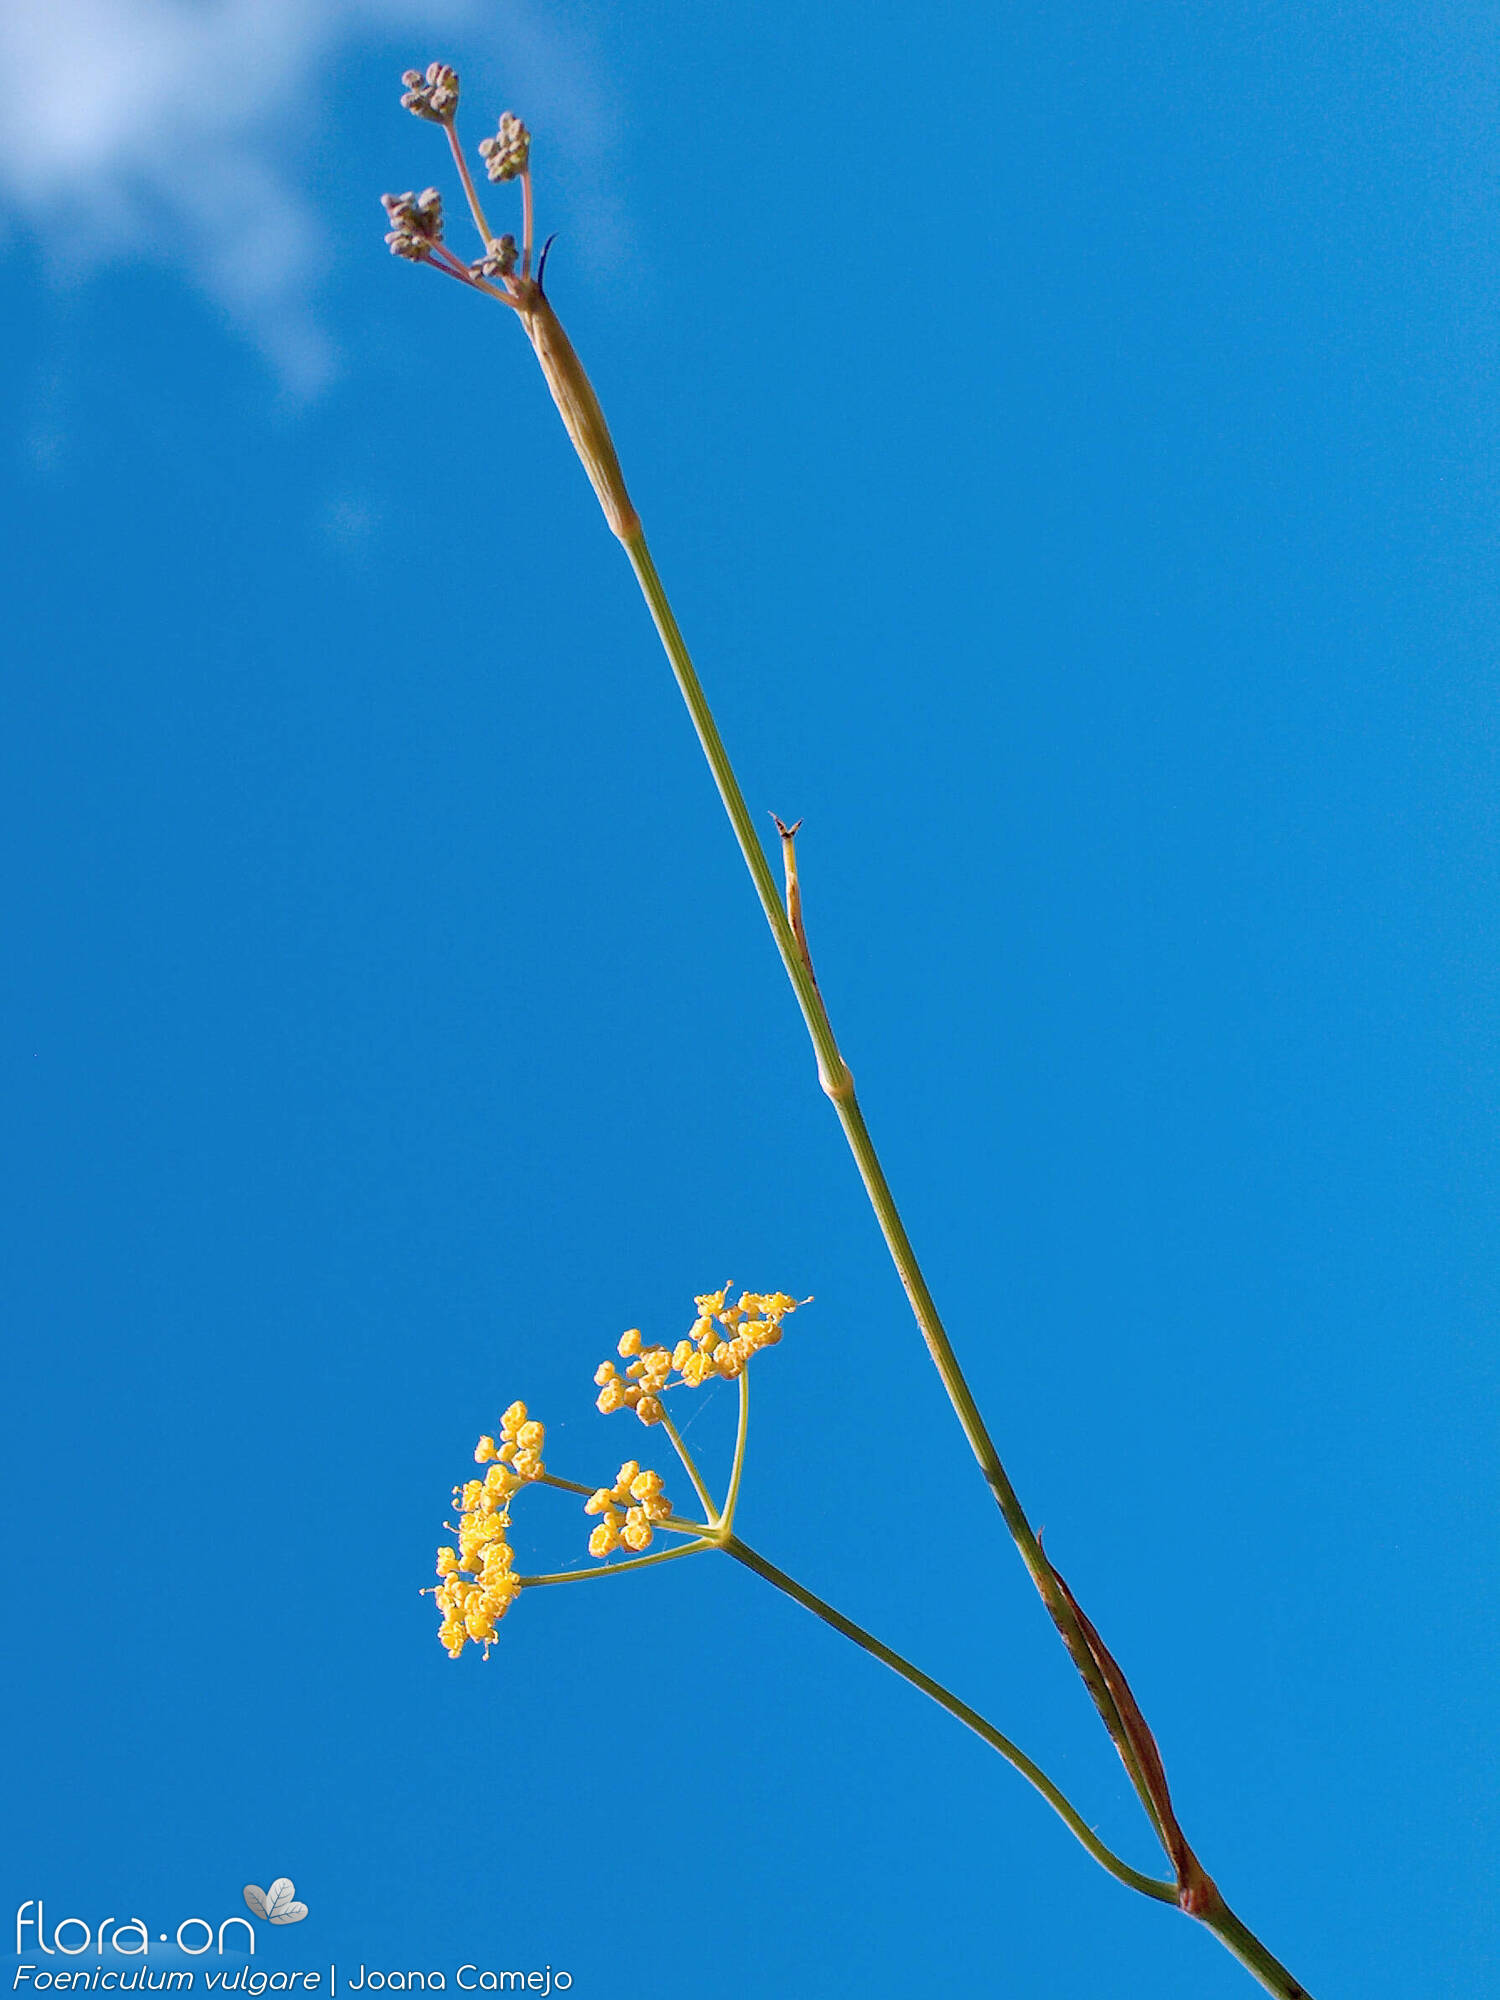 Foeniculum vulgare - Flor (geral) | Joana Camejo; CC BY-NC 4.0